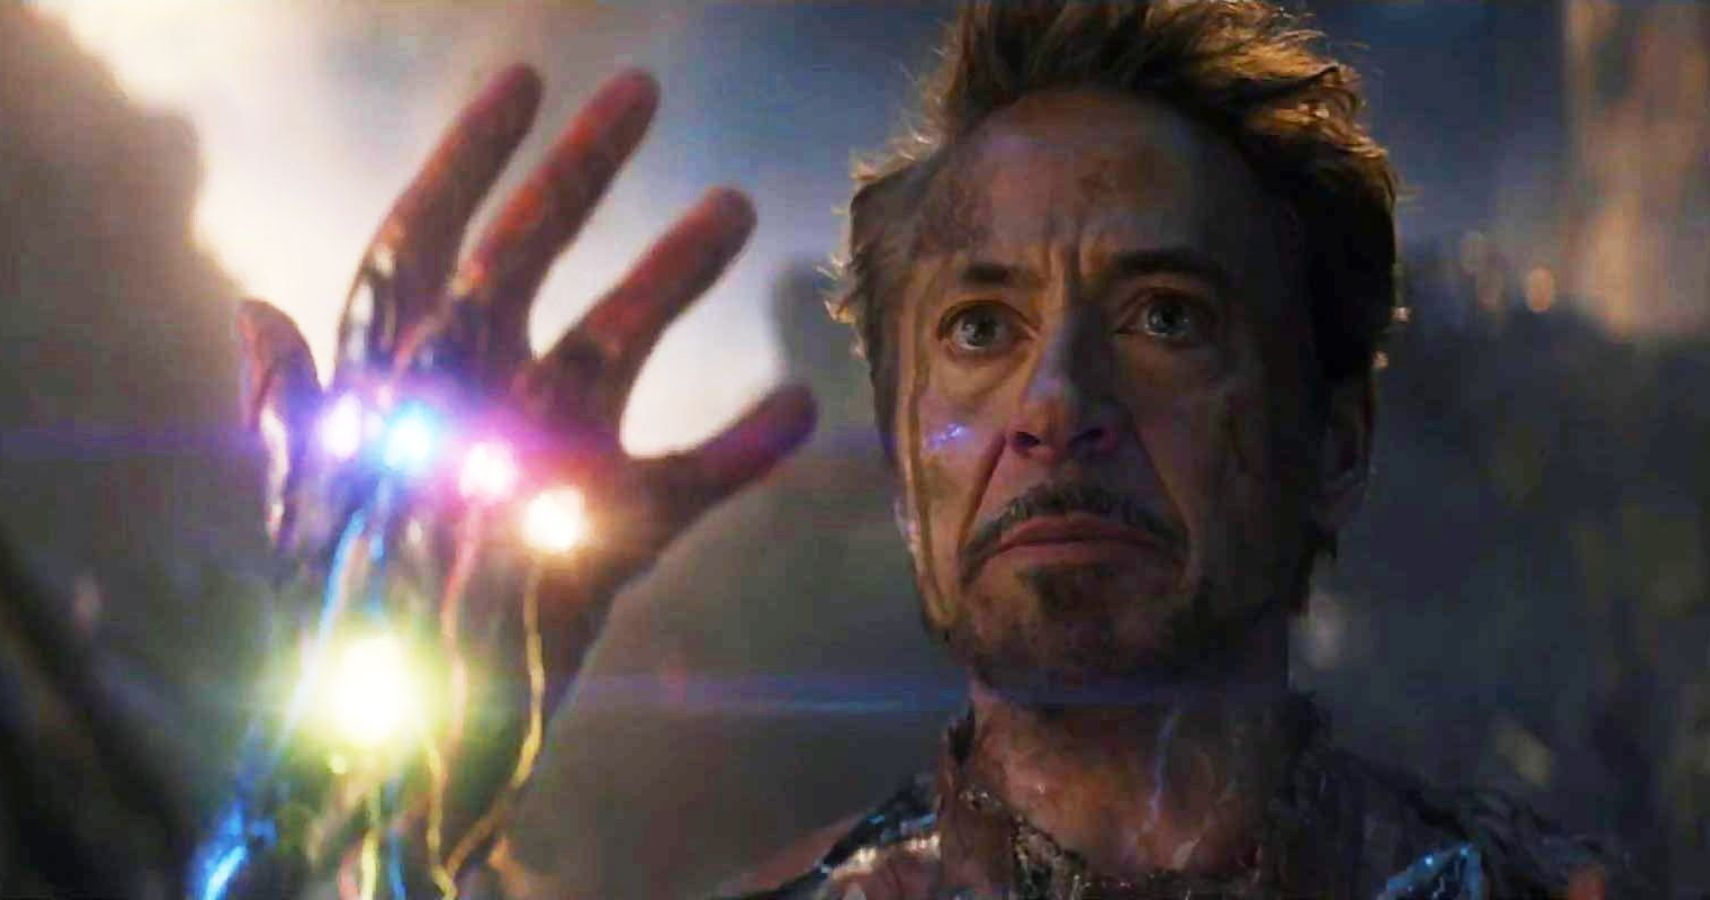 Robert Downey Jr. Shares Alternate Soul World Scene To Celebrate Endgame's Anniversary